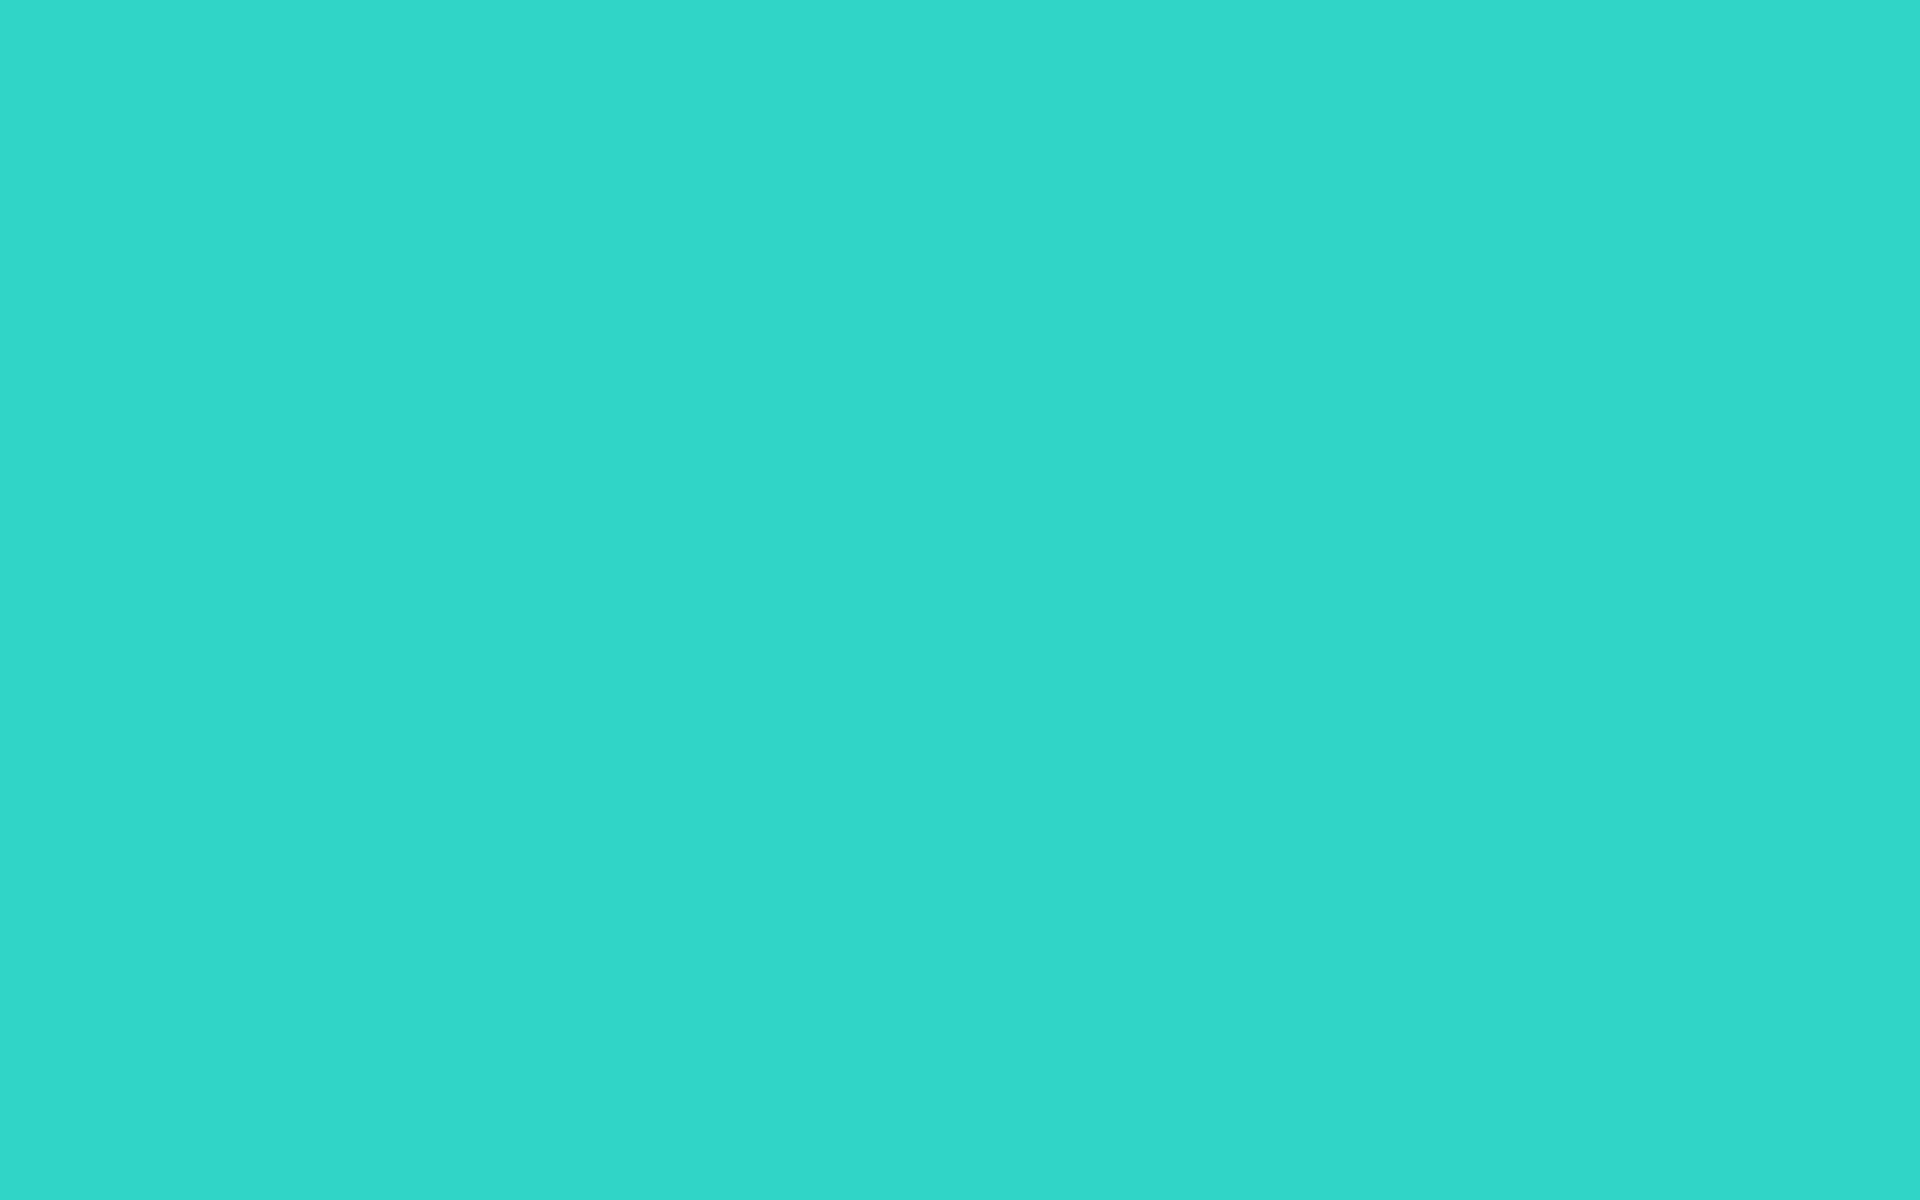 19 1920x1200 Resolution Turquoise Solid Color Background View 1920x1200